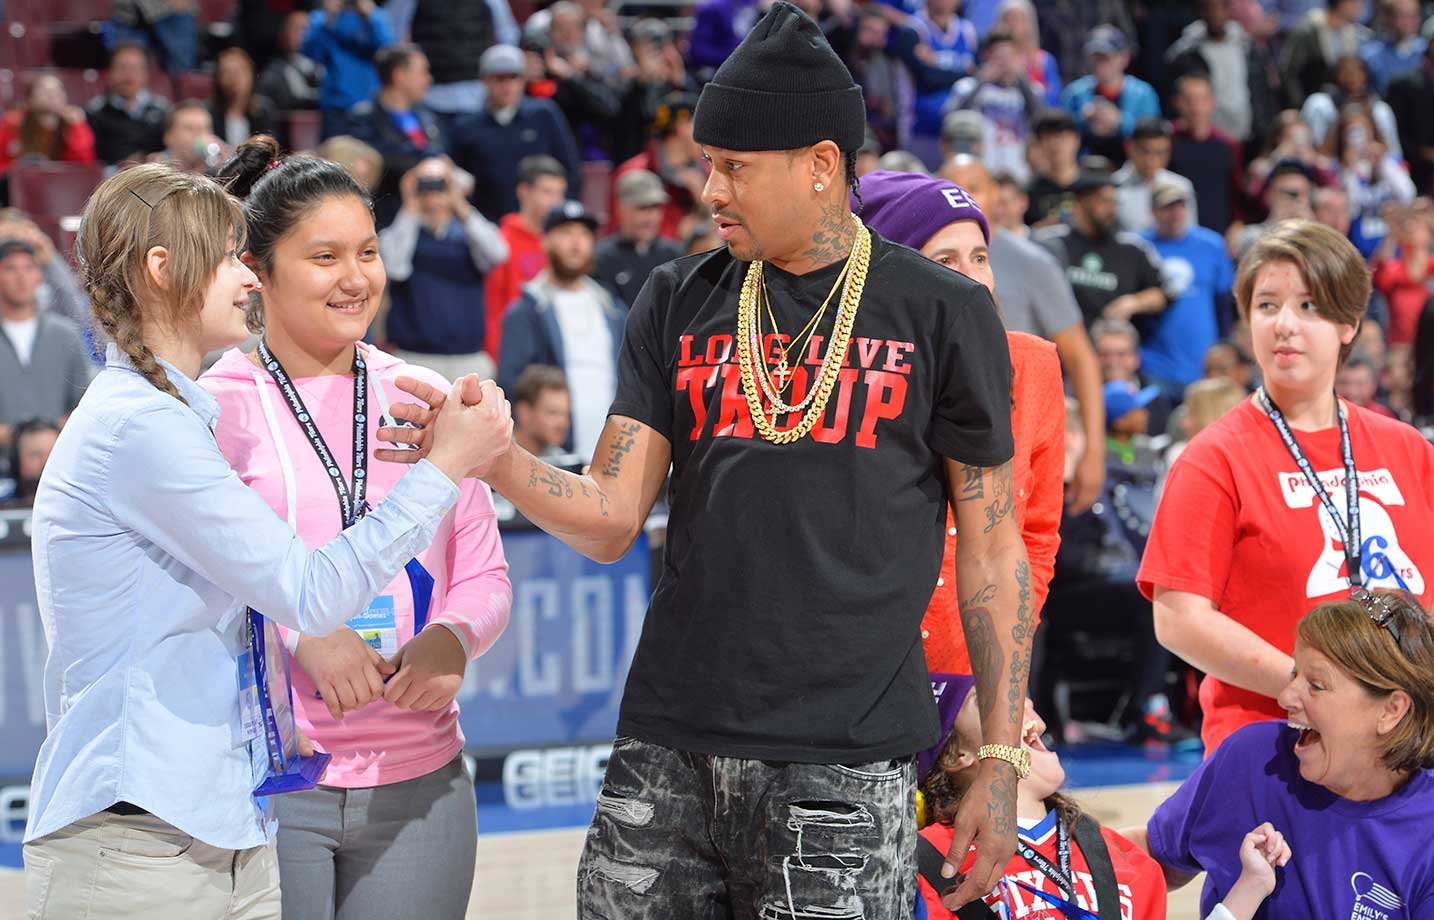 Former NBA star Allen Iverson greets fans at center court against the Sacramento Kings.